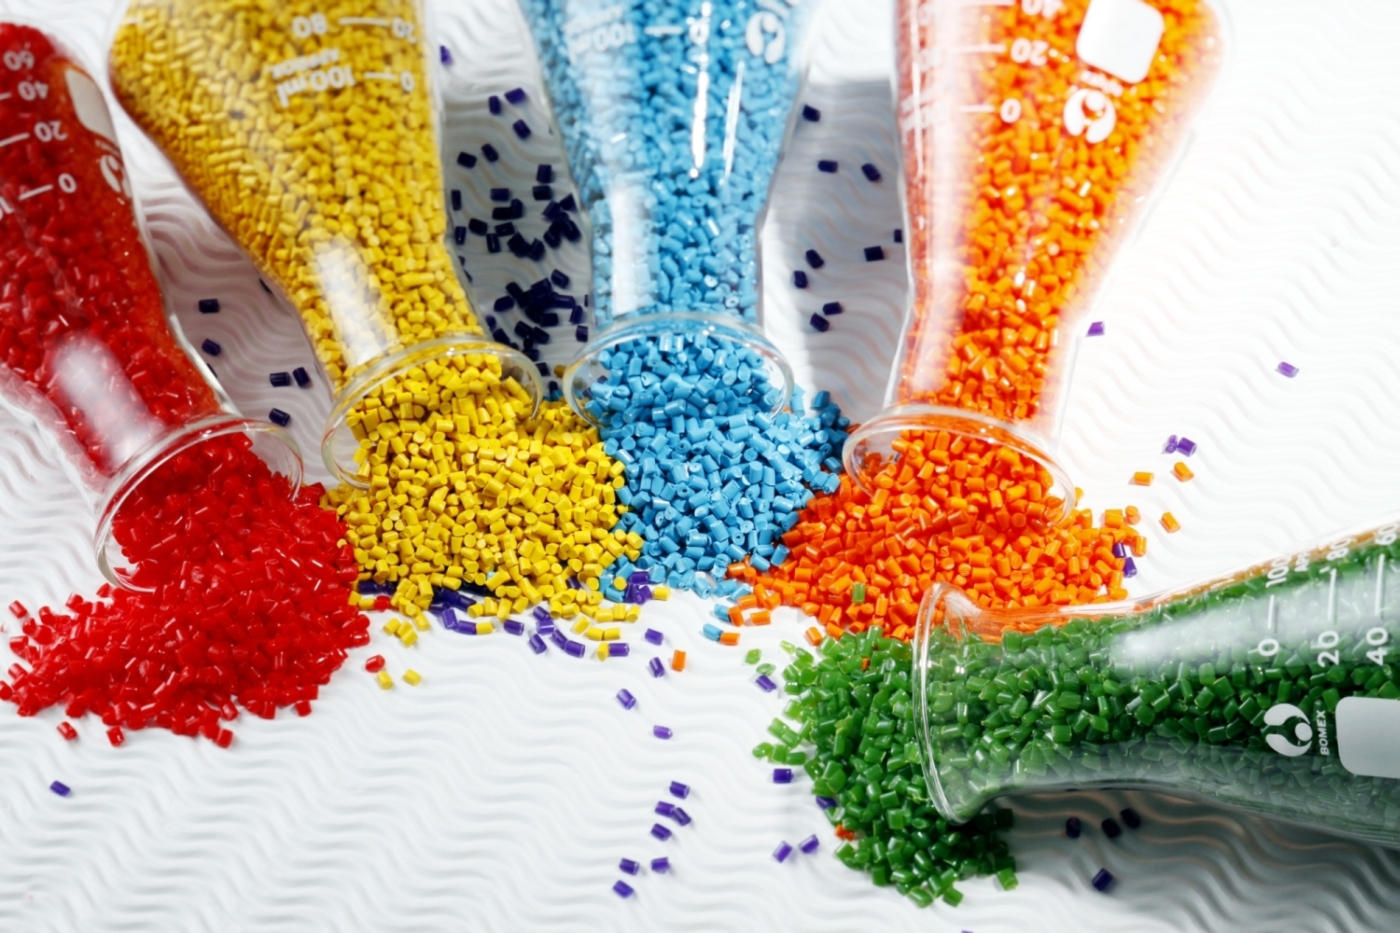 Materials used for injection moulding in NSW